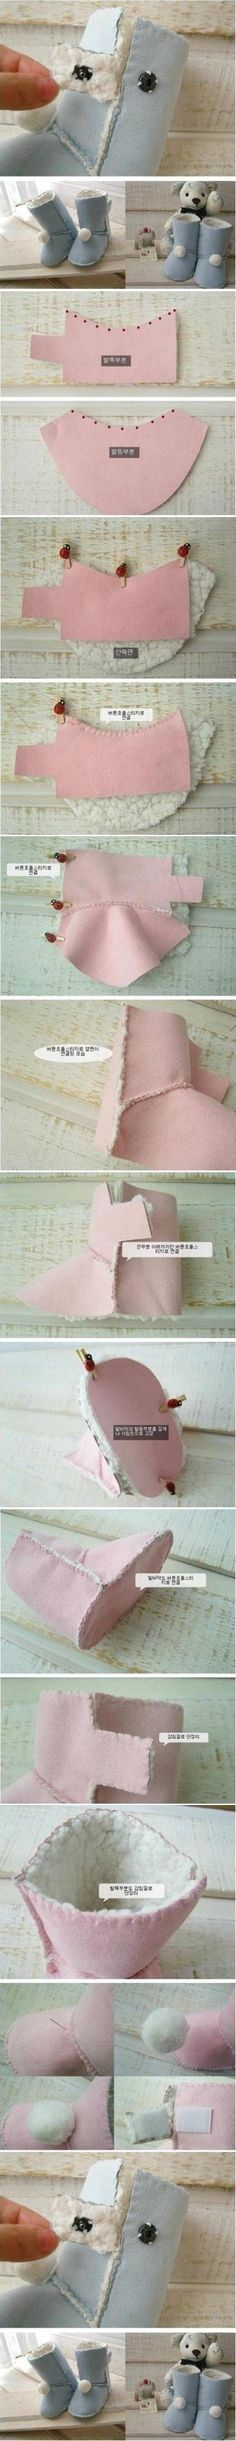 How-To-Make-Your-Own-Ugg-Boots diy crafts diy crafts how to tutorial craft clothes craft shoes